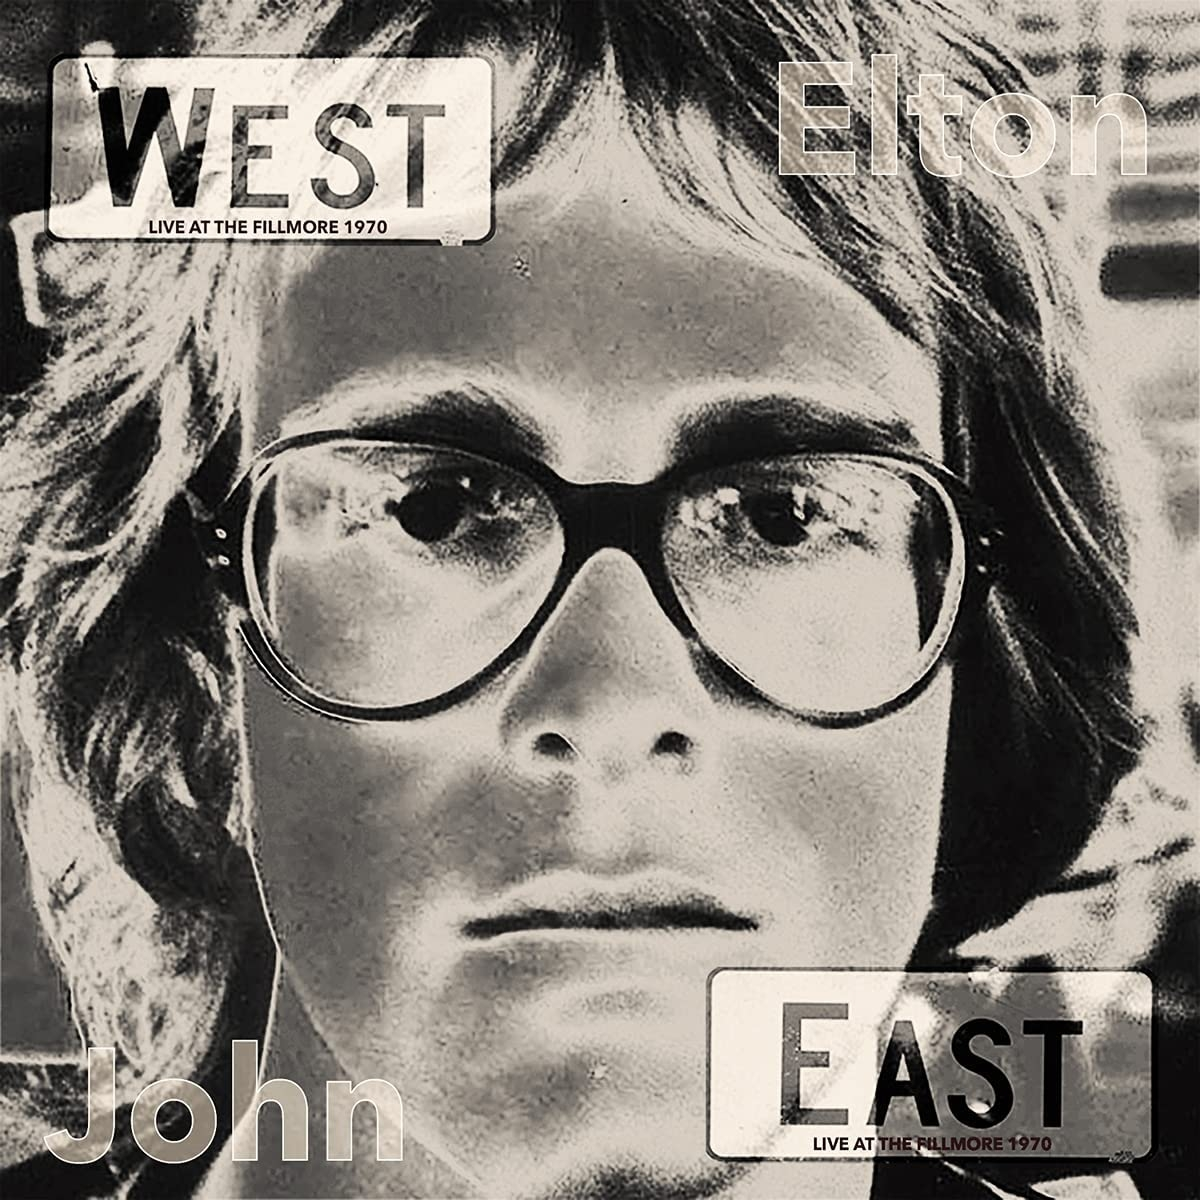 From West To East - Live At The Fillmore 1970